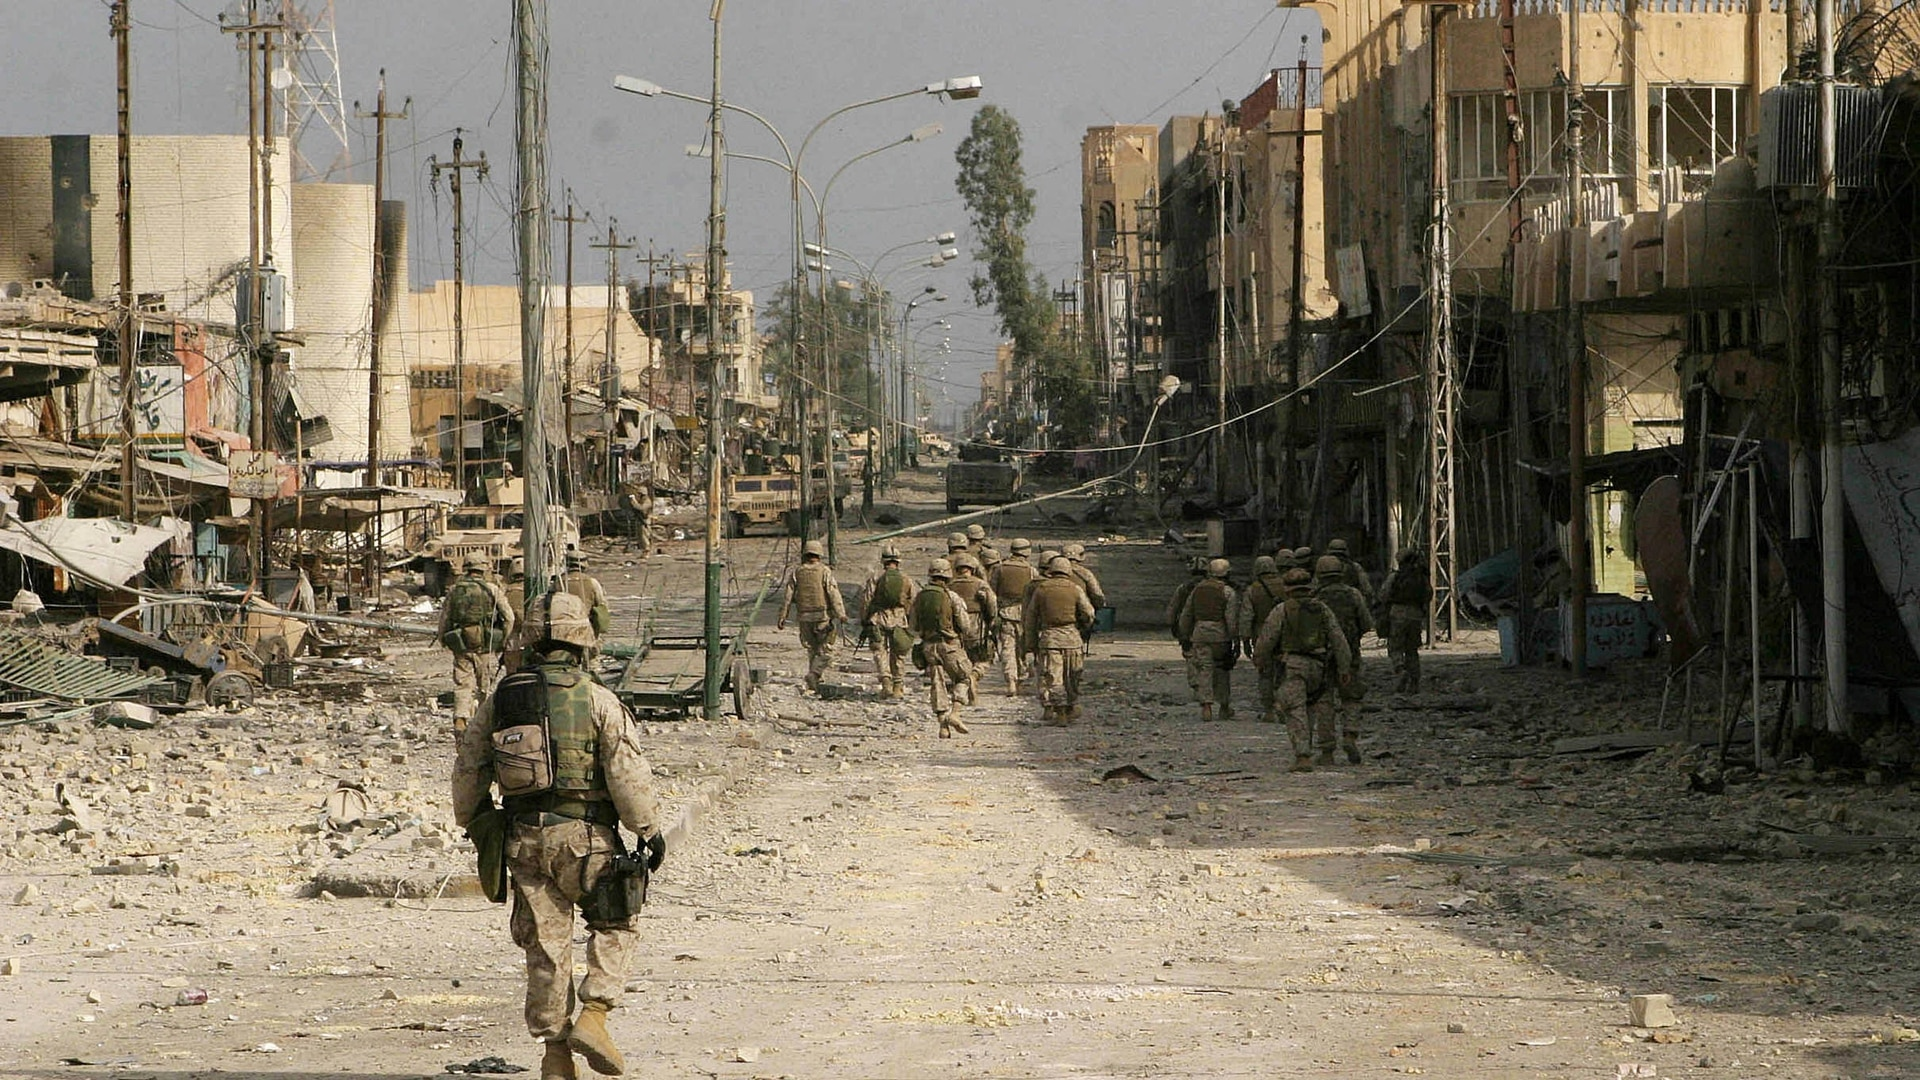 This picture released Nov. 23, 2004, by the Multi National Force-Iraq shows Marines patrolling with members of the Iraqi Special Operations Forces in the devastated city of Fallujah, Iraq. (MNF-I/AFP via Getty Images)